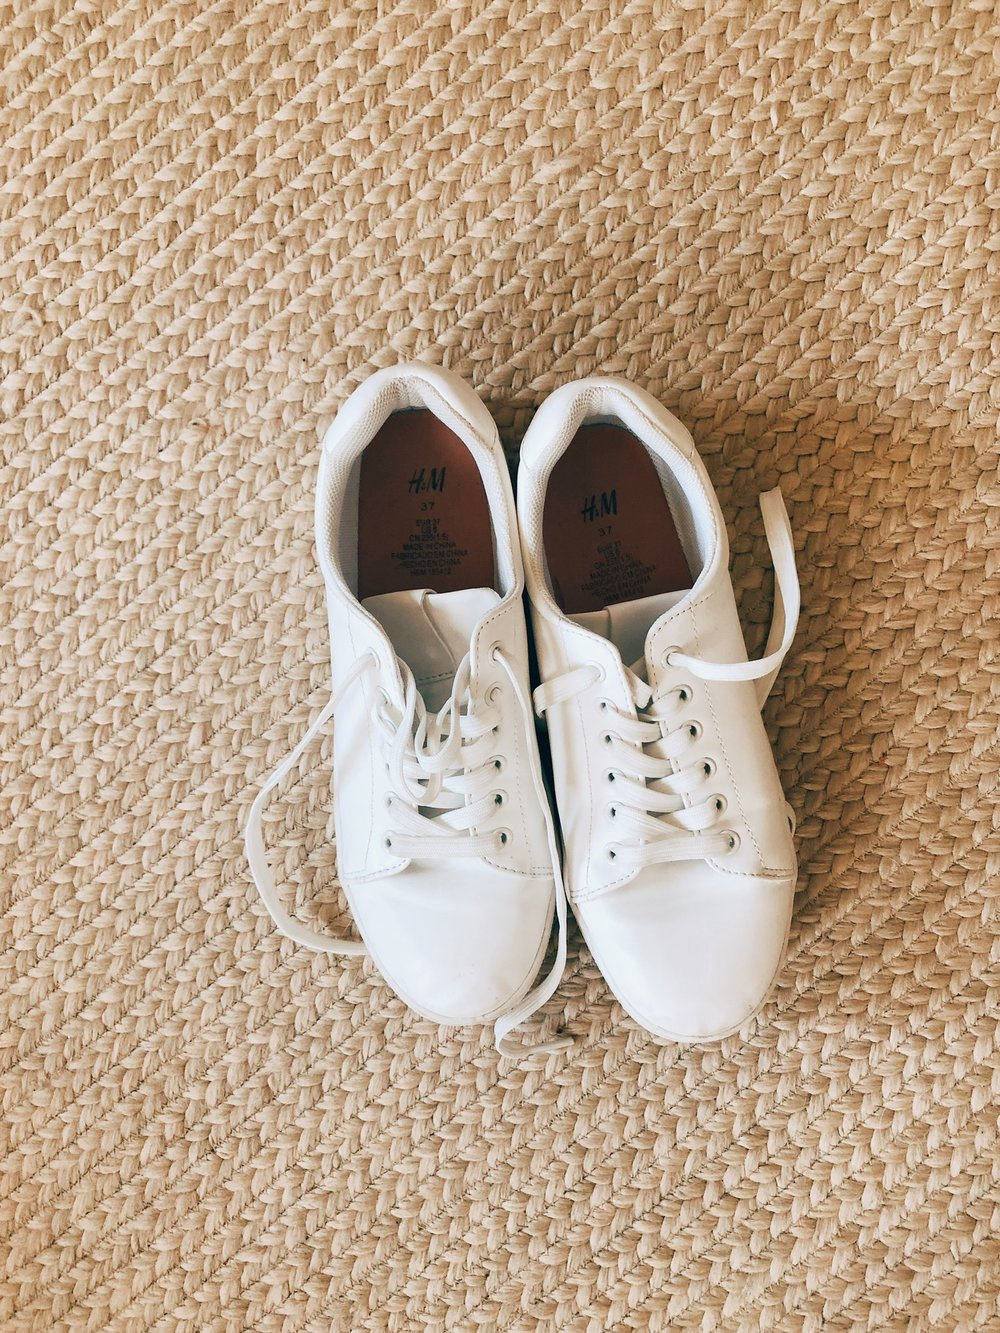 Vintage white platform sneakers, thrift shopping haul, thrift shopping tips